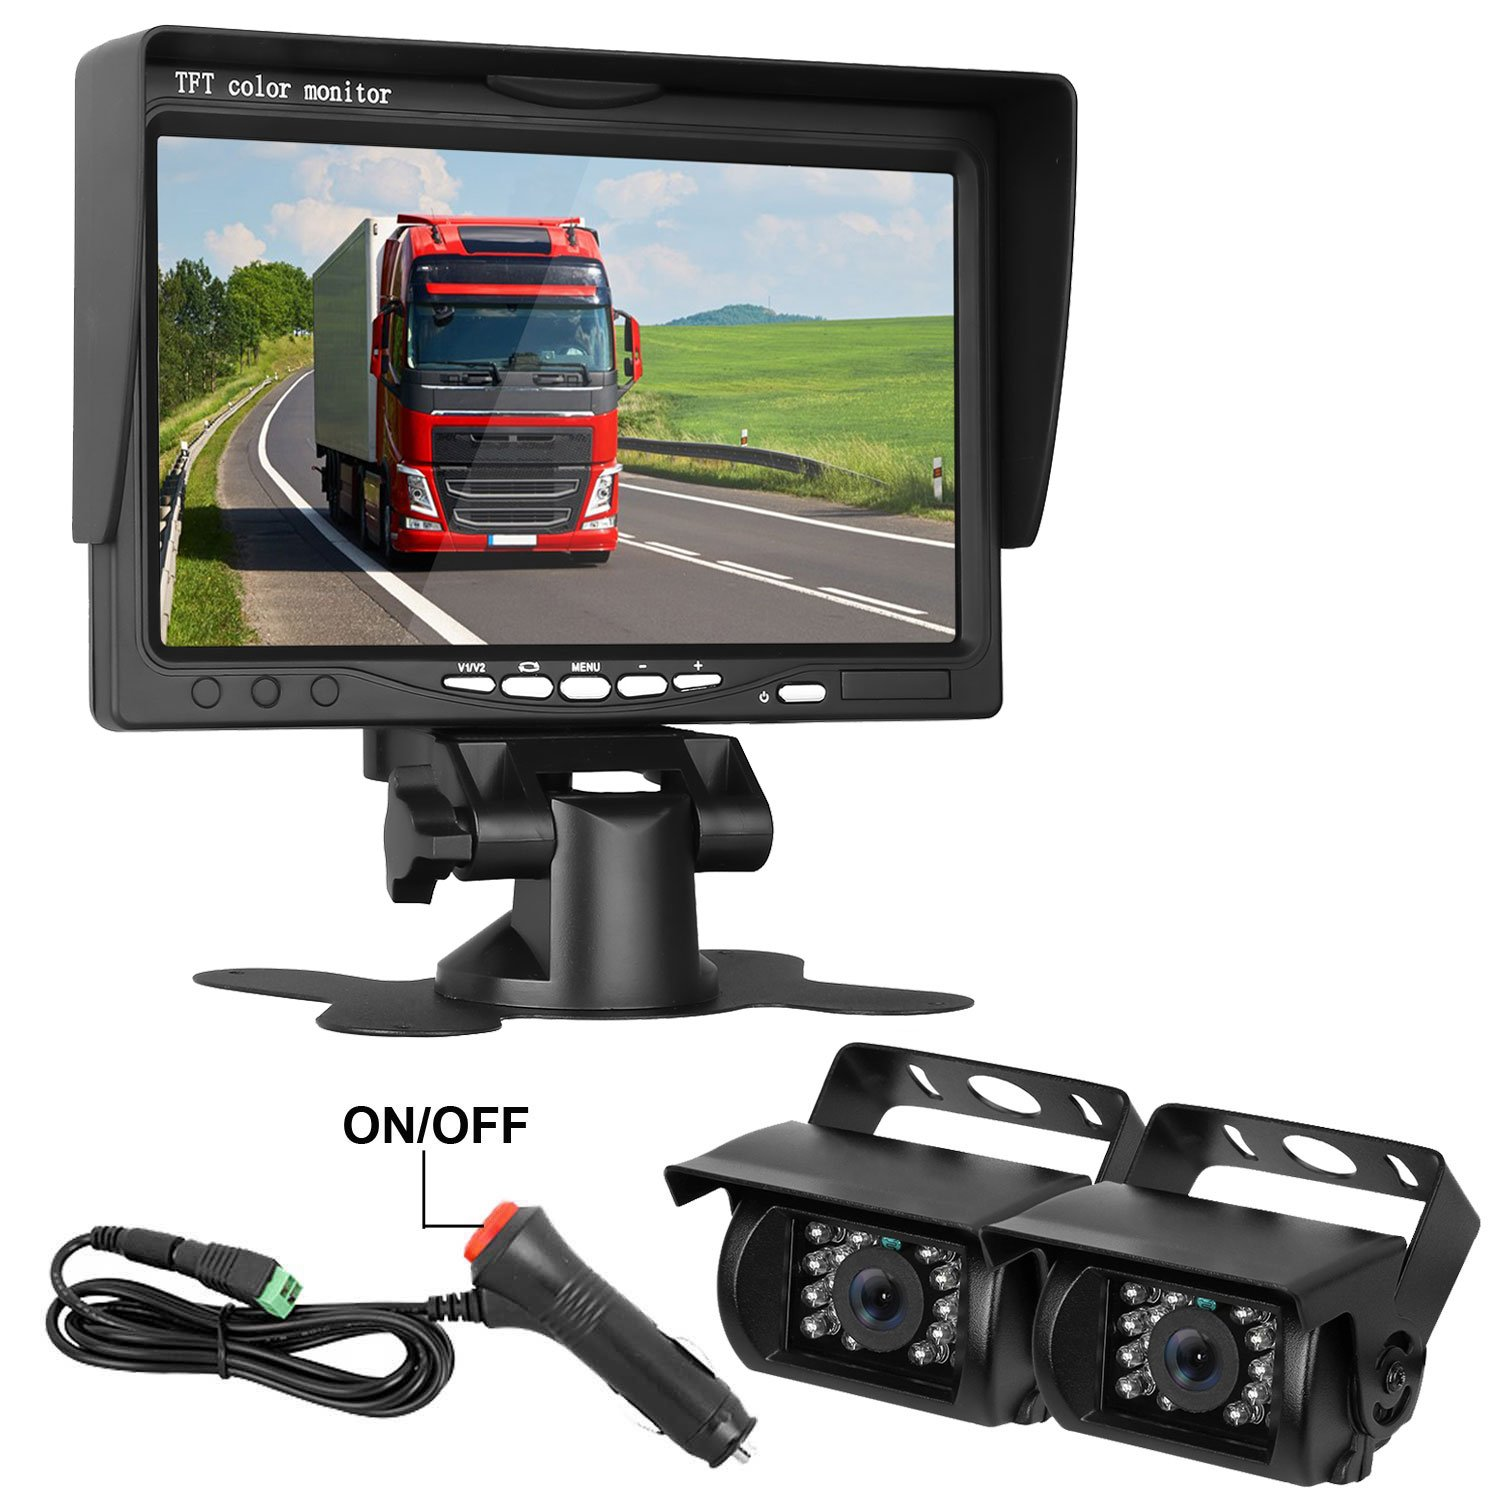 "ZSMJ Backup Camera 7"" Display Monitor Kit 2 Cameras for School Bus/Trailer/RV/Truck/Van/Pick up Rear View Camera Single Power System IP68 Waterproof Night Vision Driving/Reversing Camera"